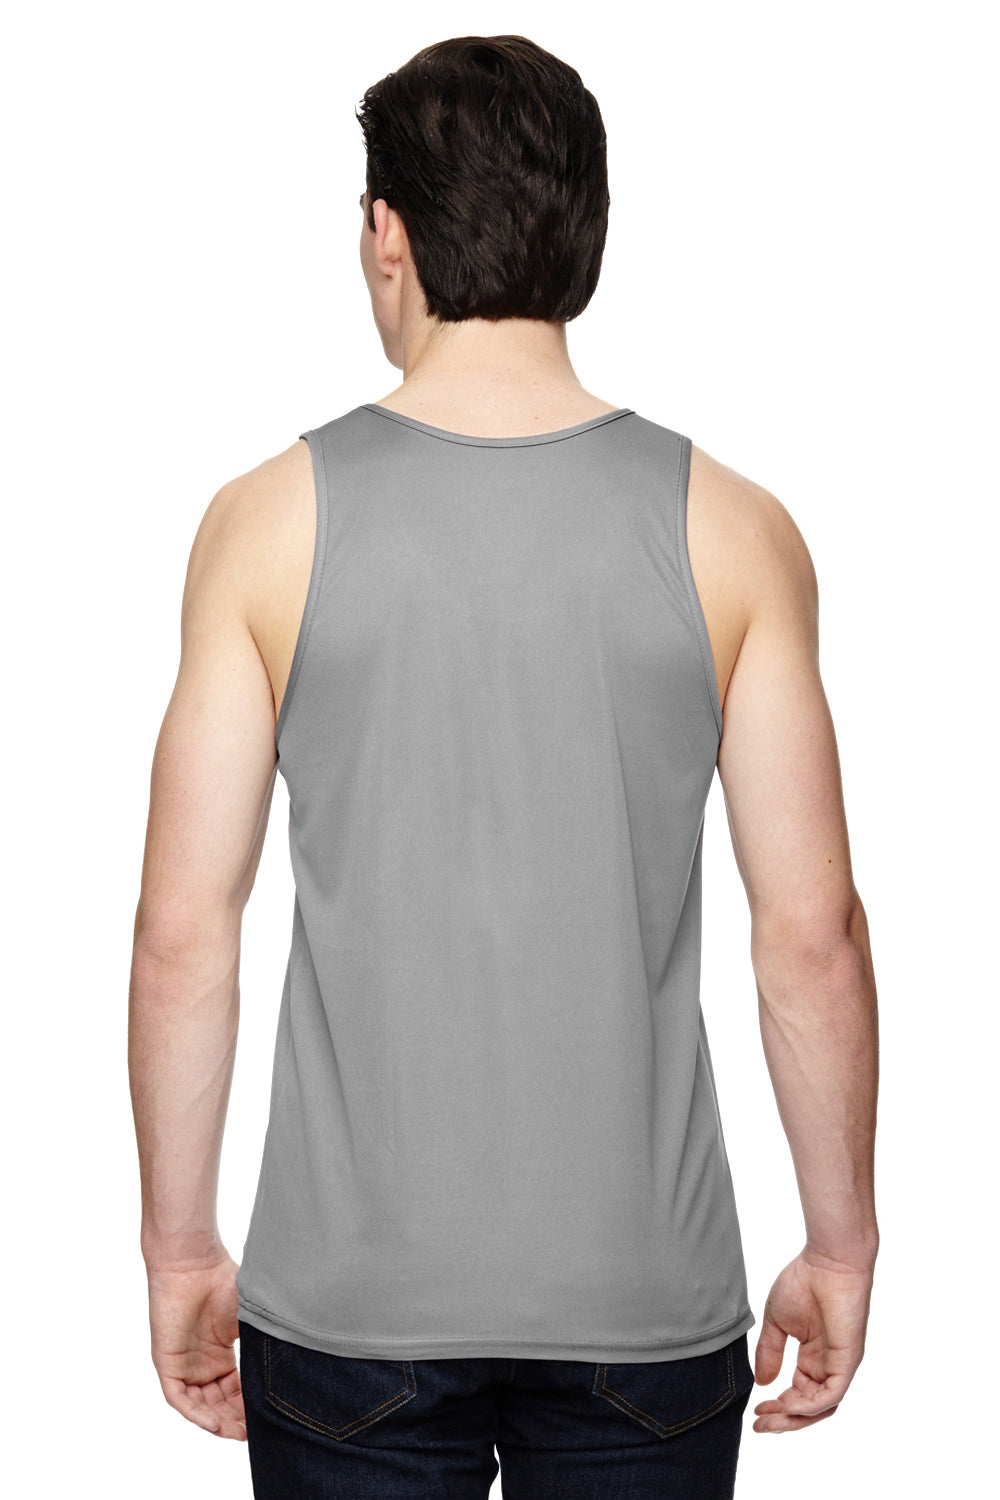 Augusta Sportswear 703 Mens Training Moisture Wicking Tank Top Silver Grey Back